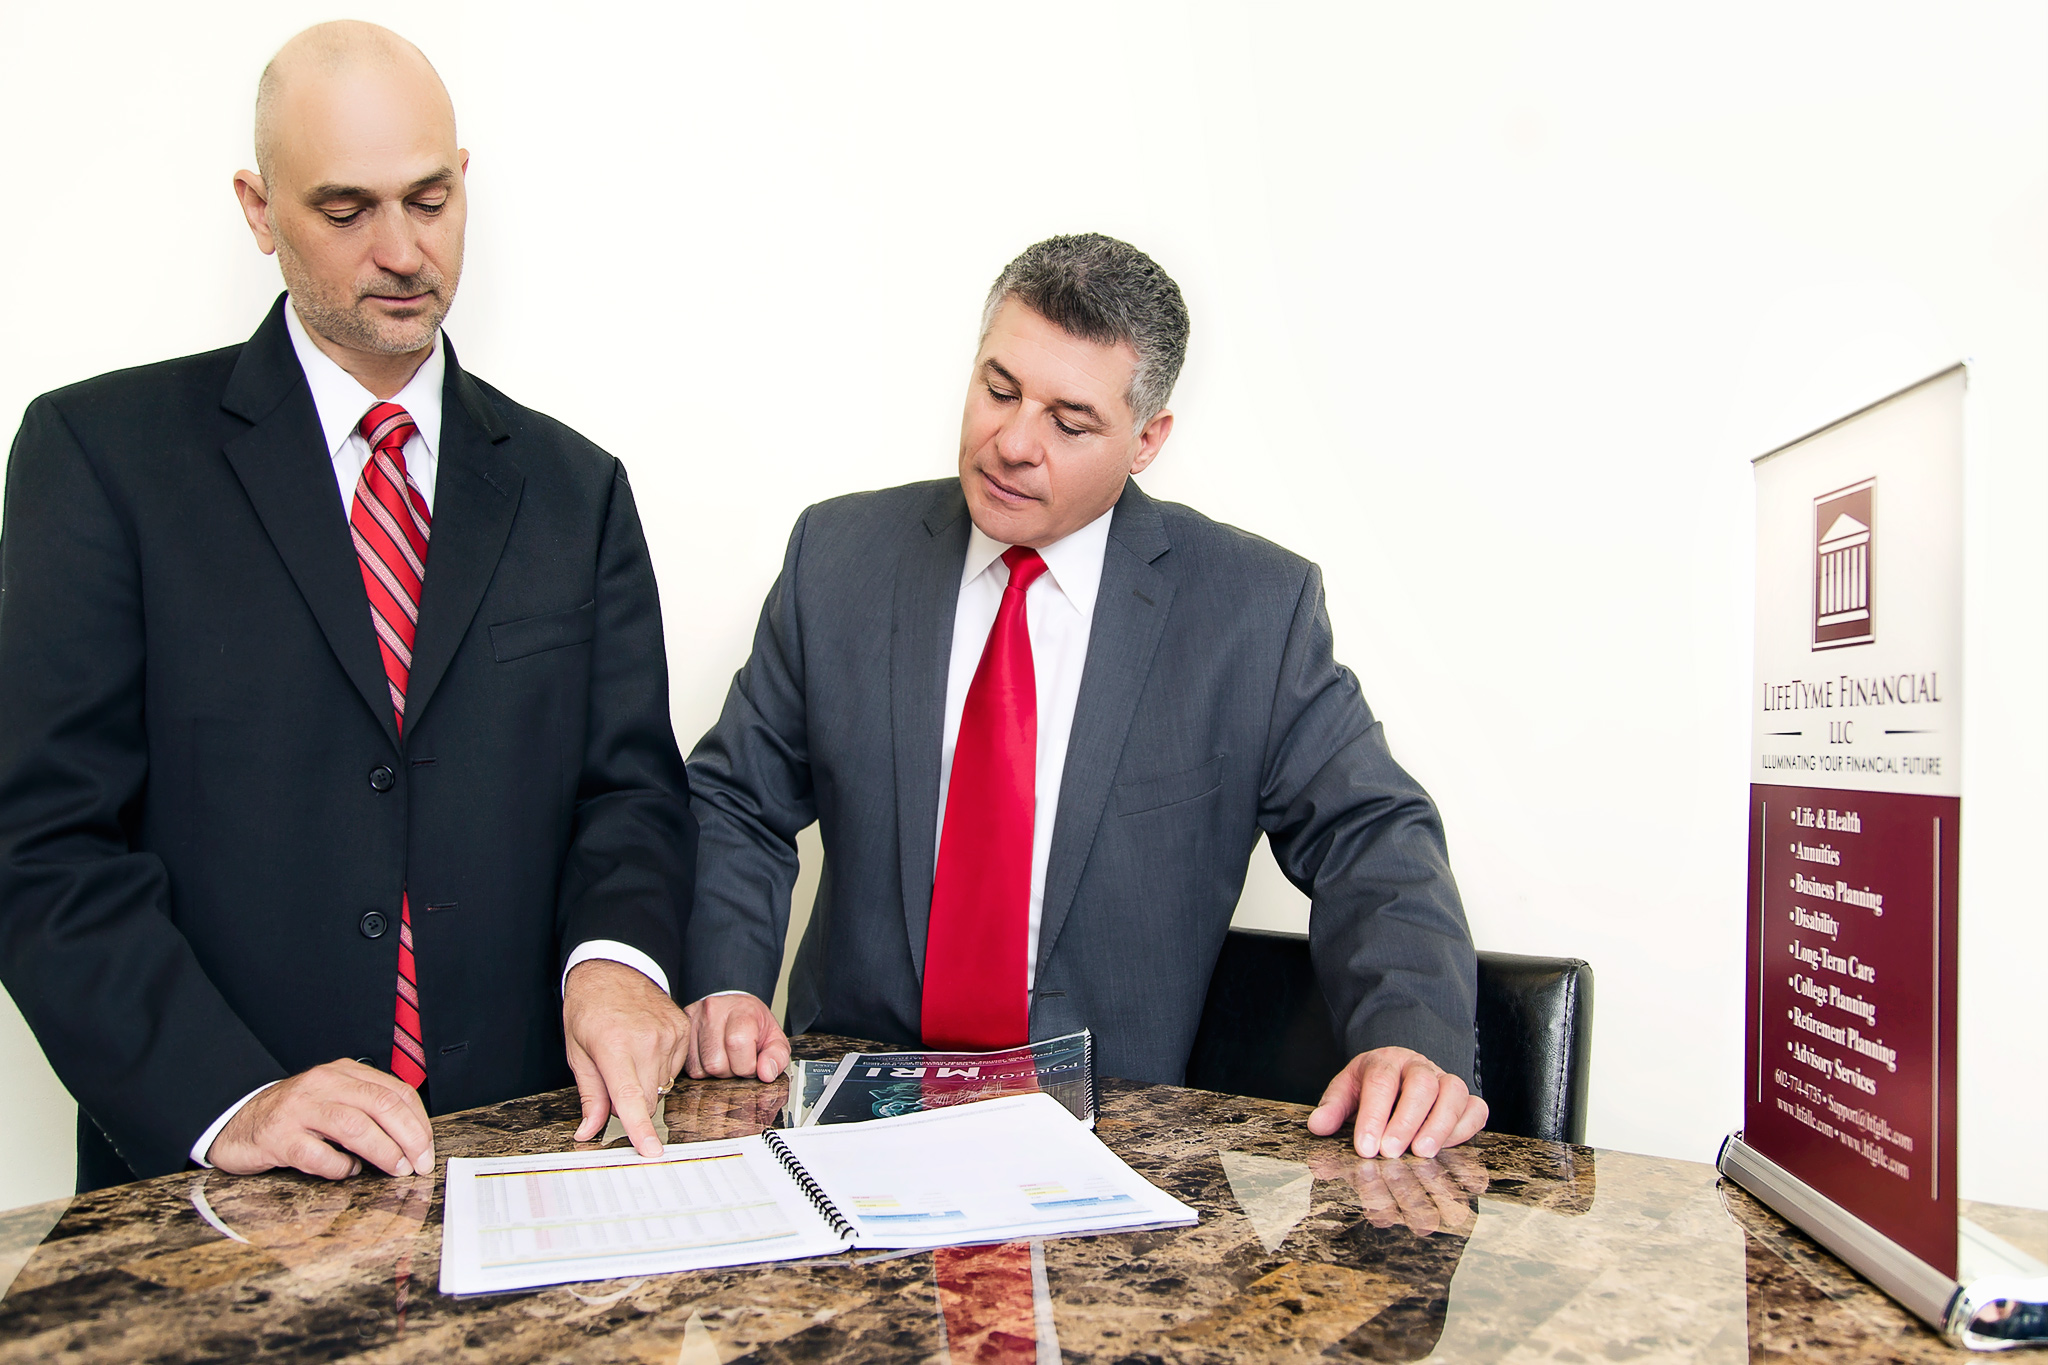 Financial Advisors Commercial Photography